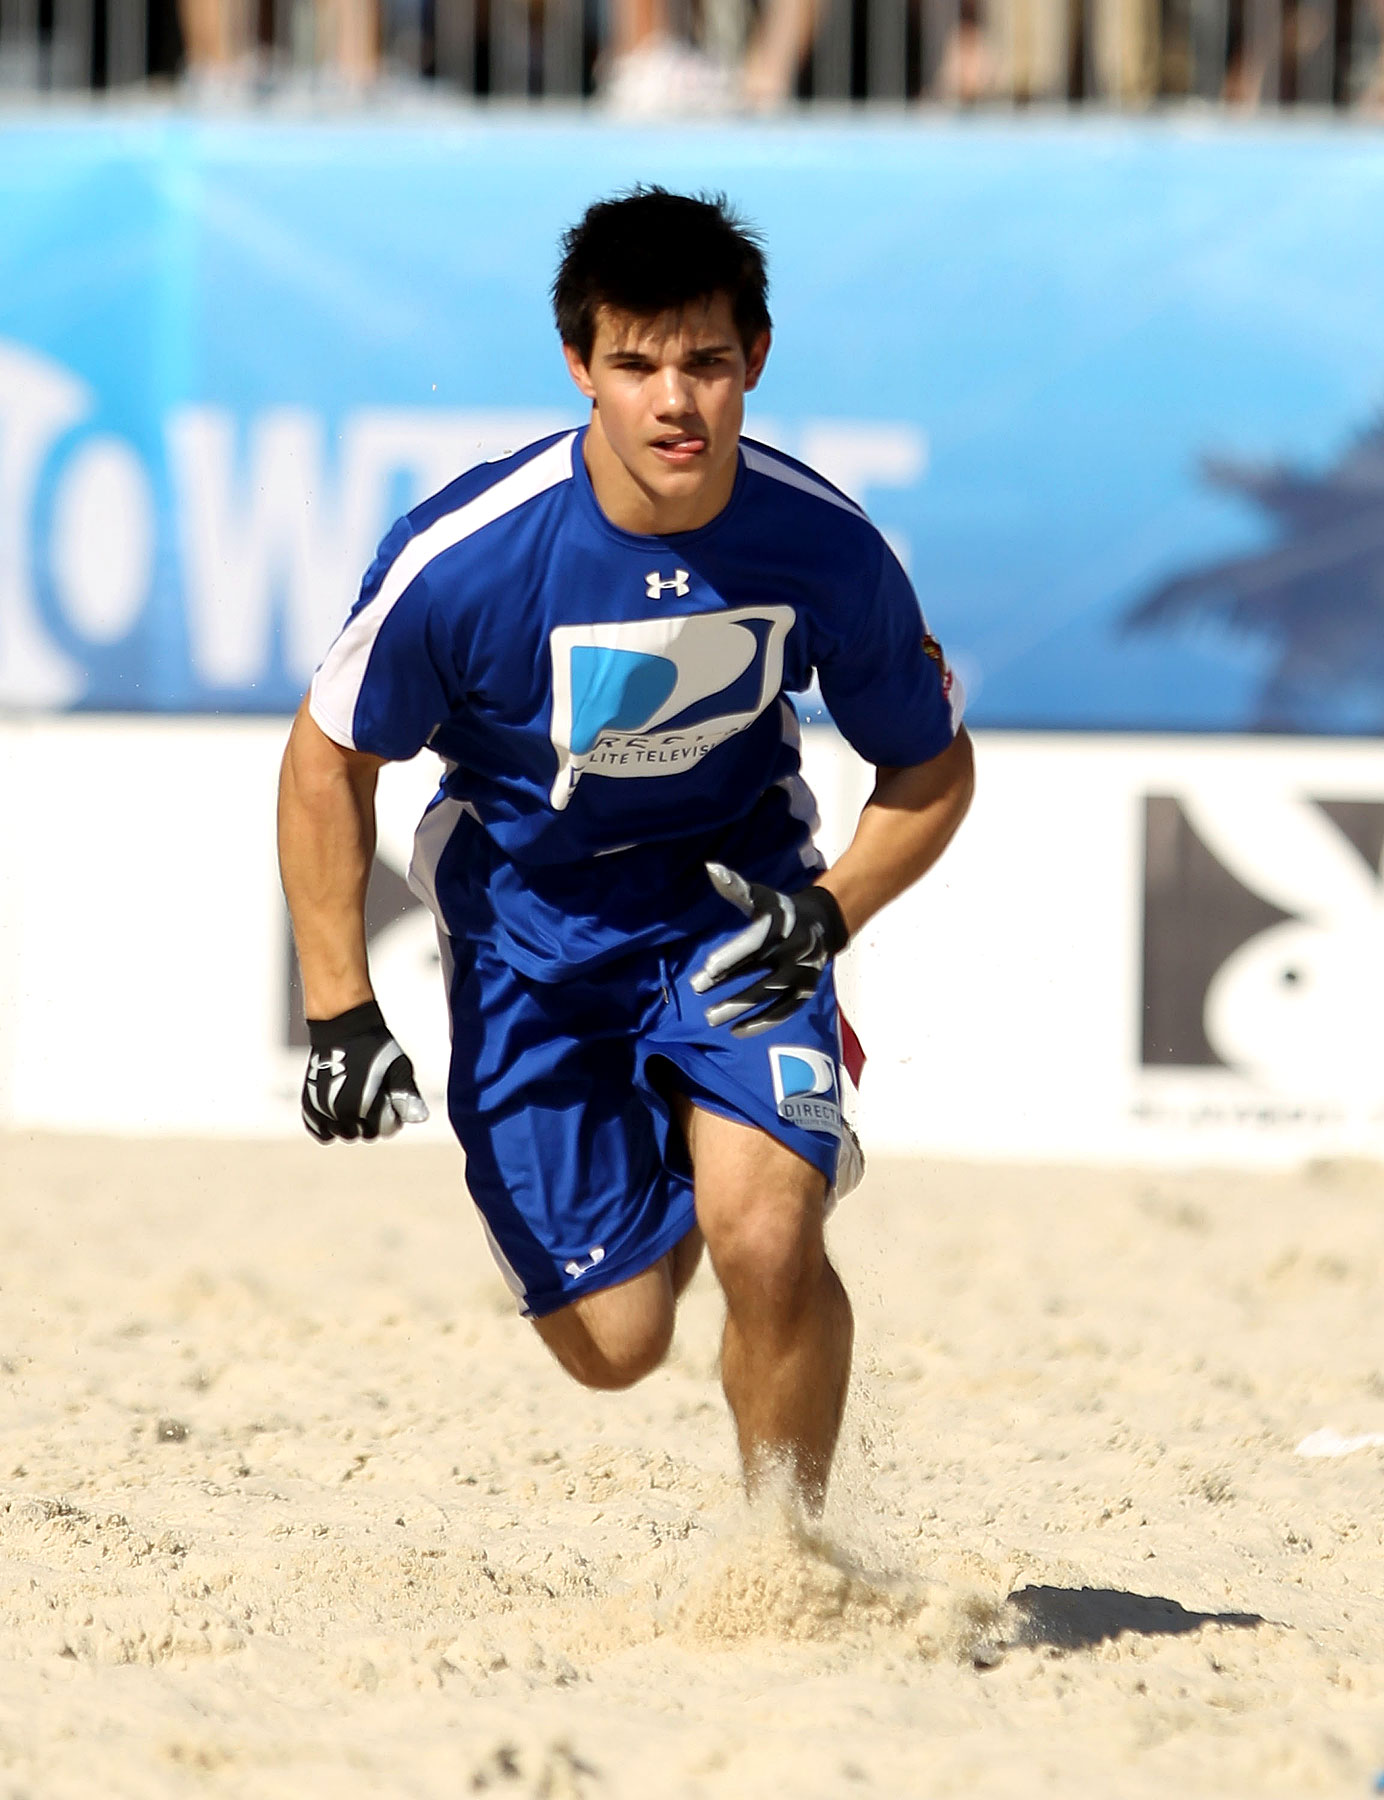 Taylor Lautner, Other Hotties Play Flag Football-photo